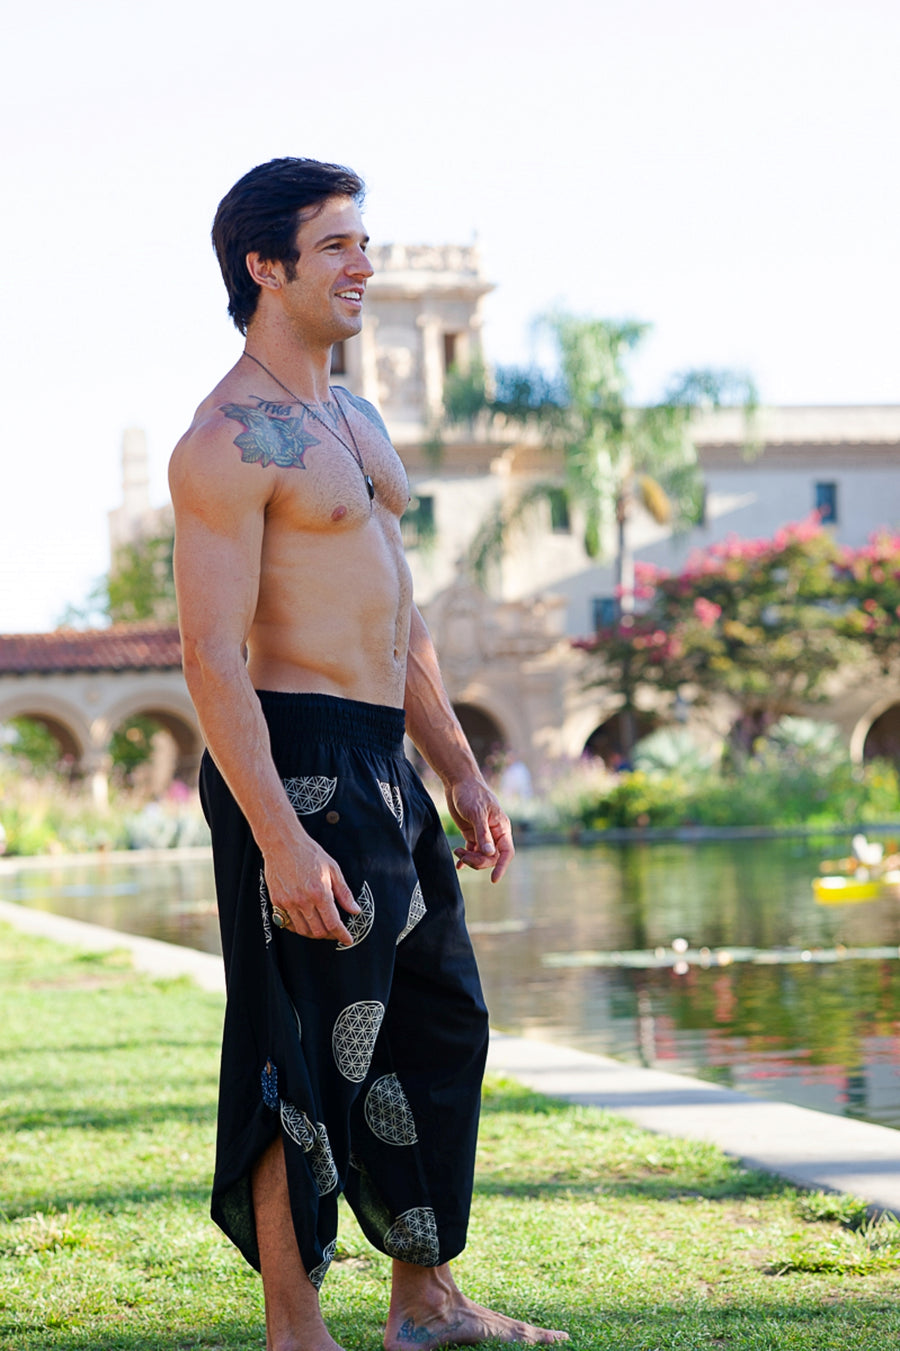 Samurai Elastic Shorts in Sacred Geometry-The High Thai-The High Thai-Yoga Pants-Harem Pants-Hippie Clothing-San Diego